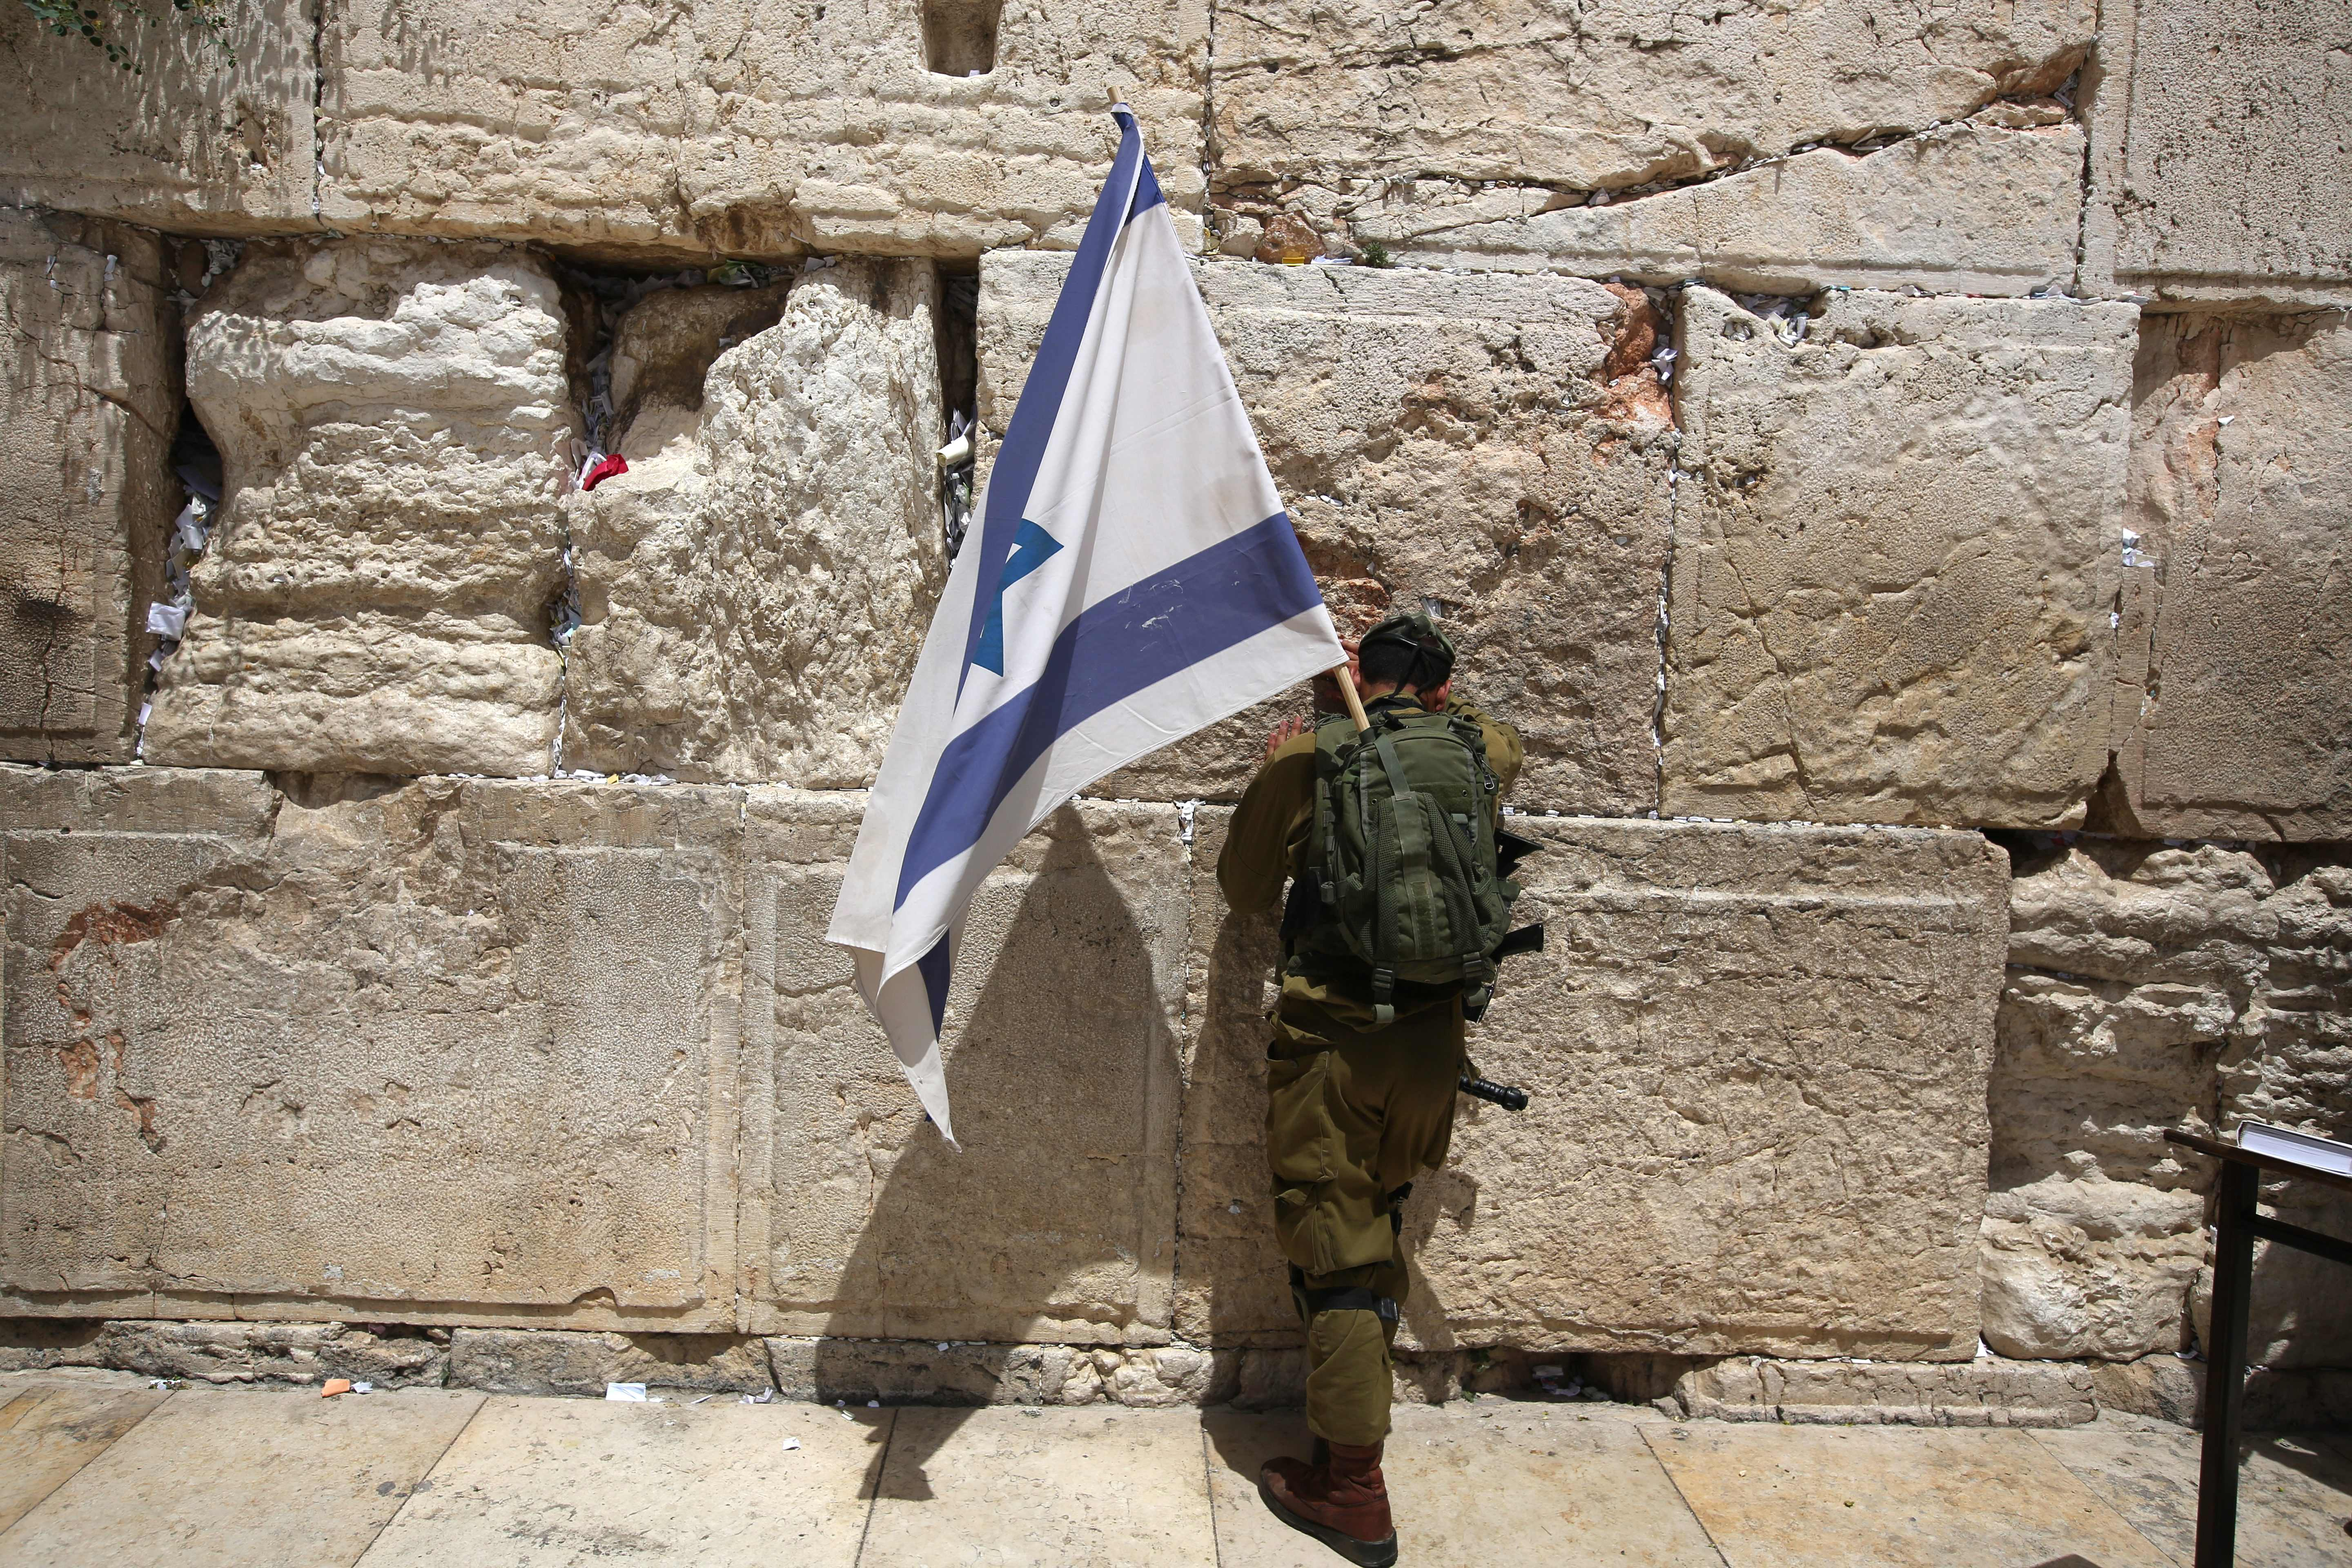 An Israeli soldier prays at the Western Wall with a national flag on June 5, 2016 in Jerusalem's old city, as Israelis celebrate Jerusalem Day.